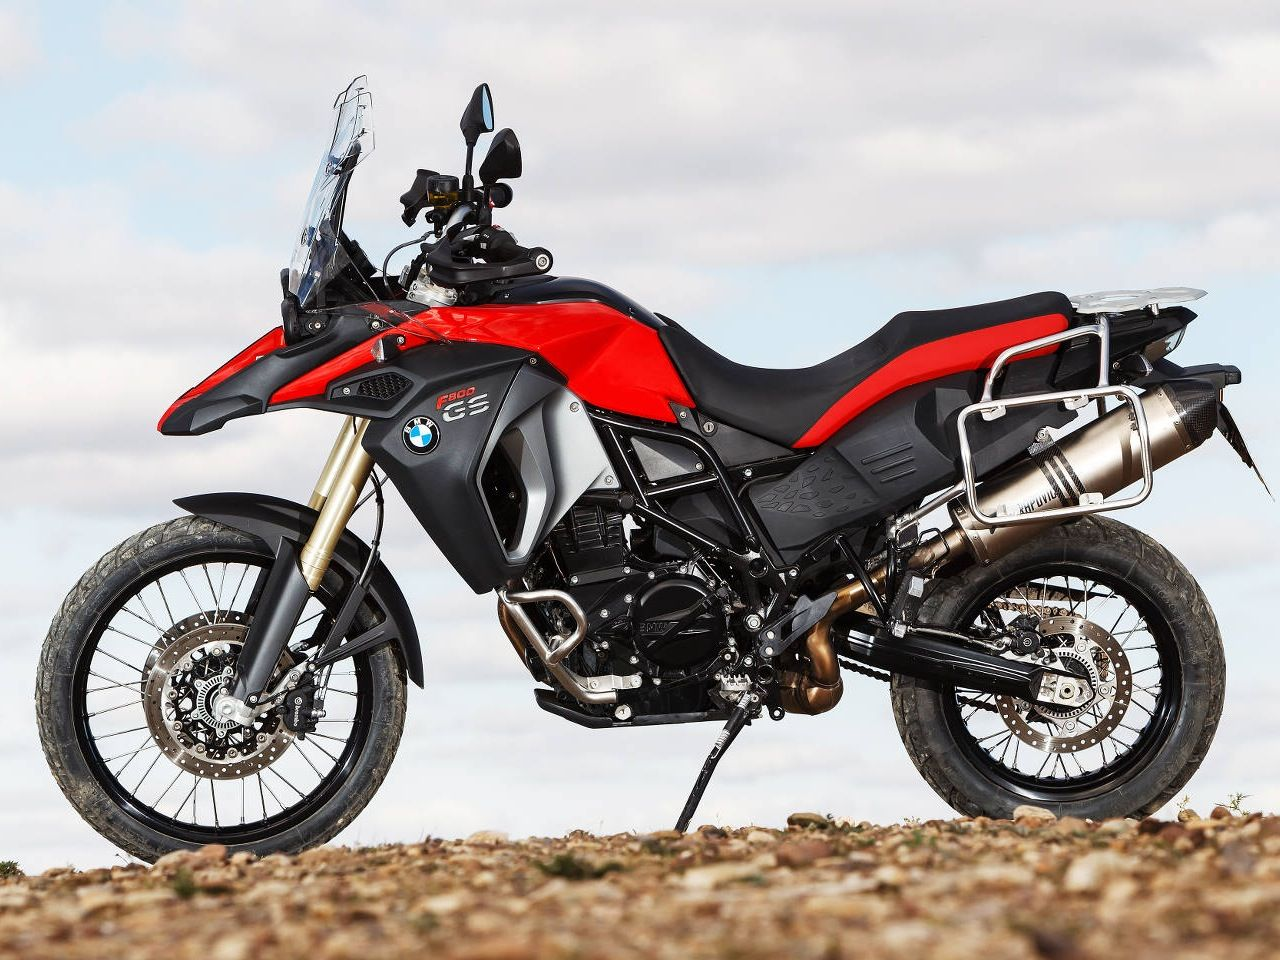 F 800 Gsa 2014 Bmw F800gs Adventure Aventura En Moto Bmw